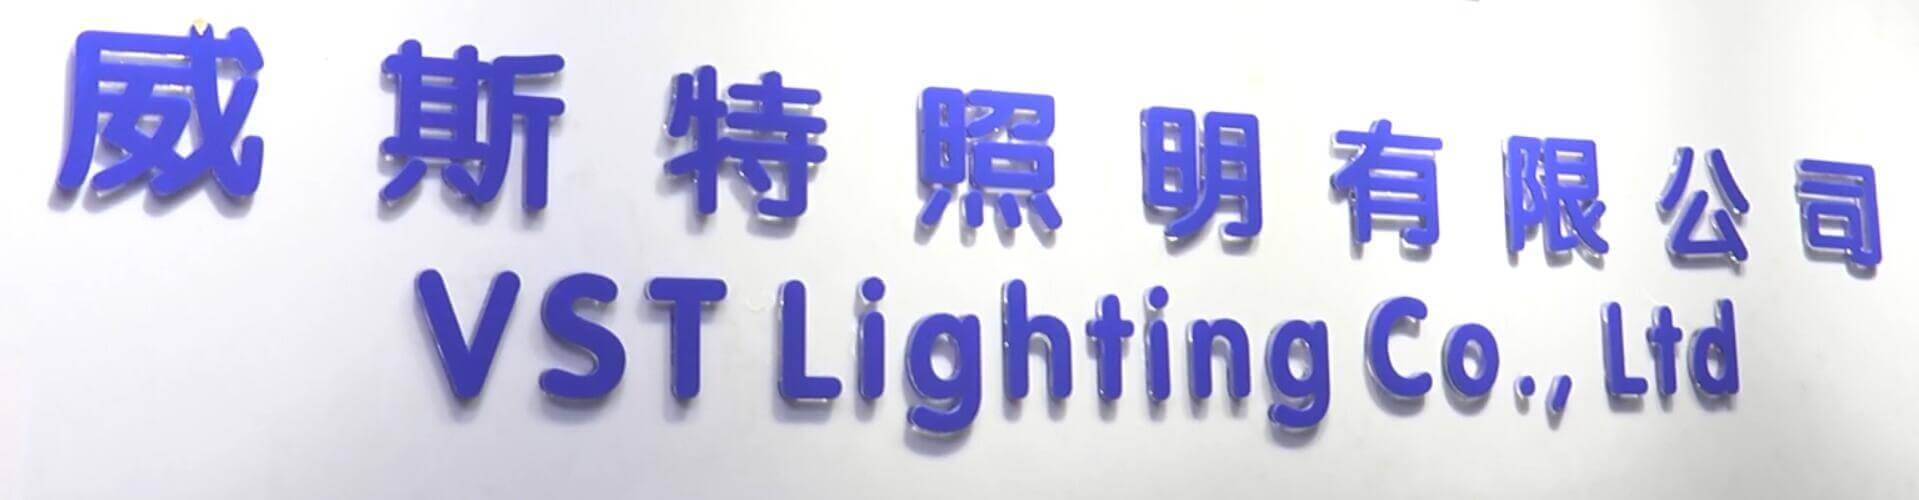 T5 LED Manufacturers